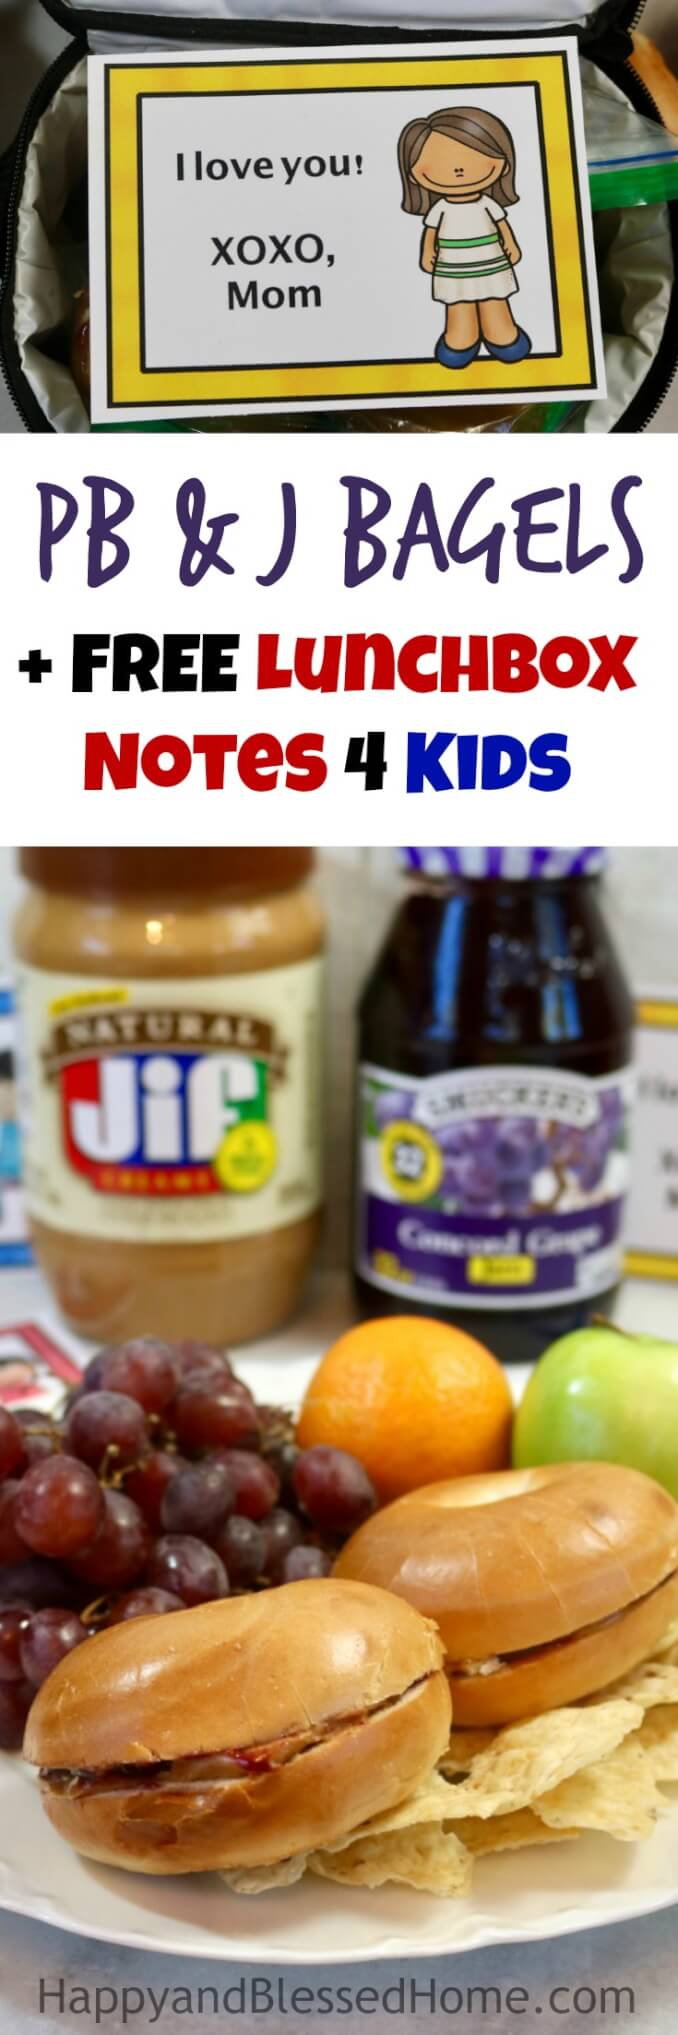 Peanut Butter and Jelly Bagel Sandwiches with 12 FREE Lunchbox Notes for Kids